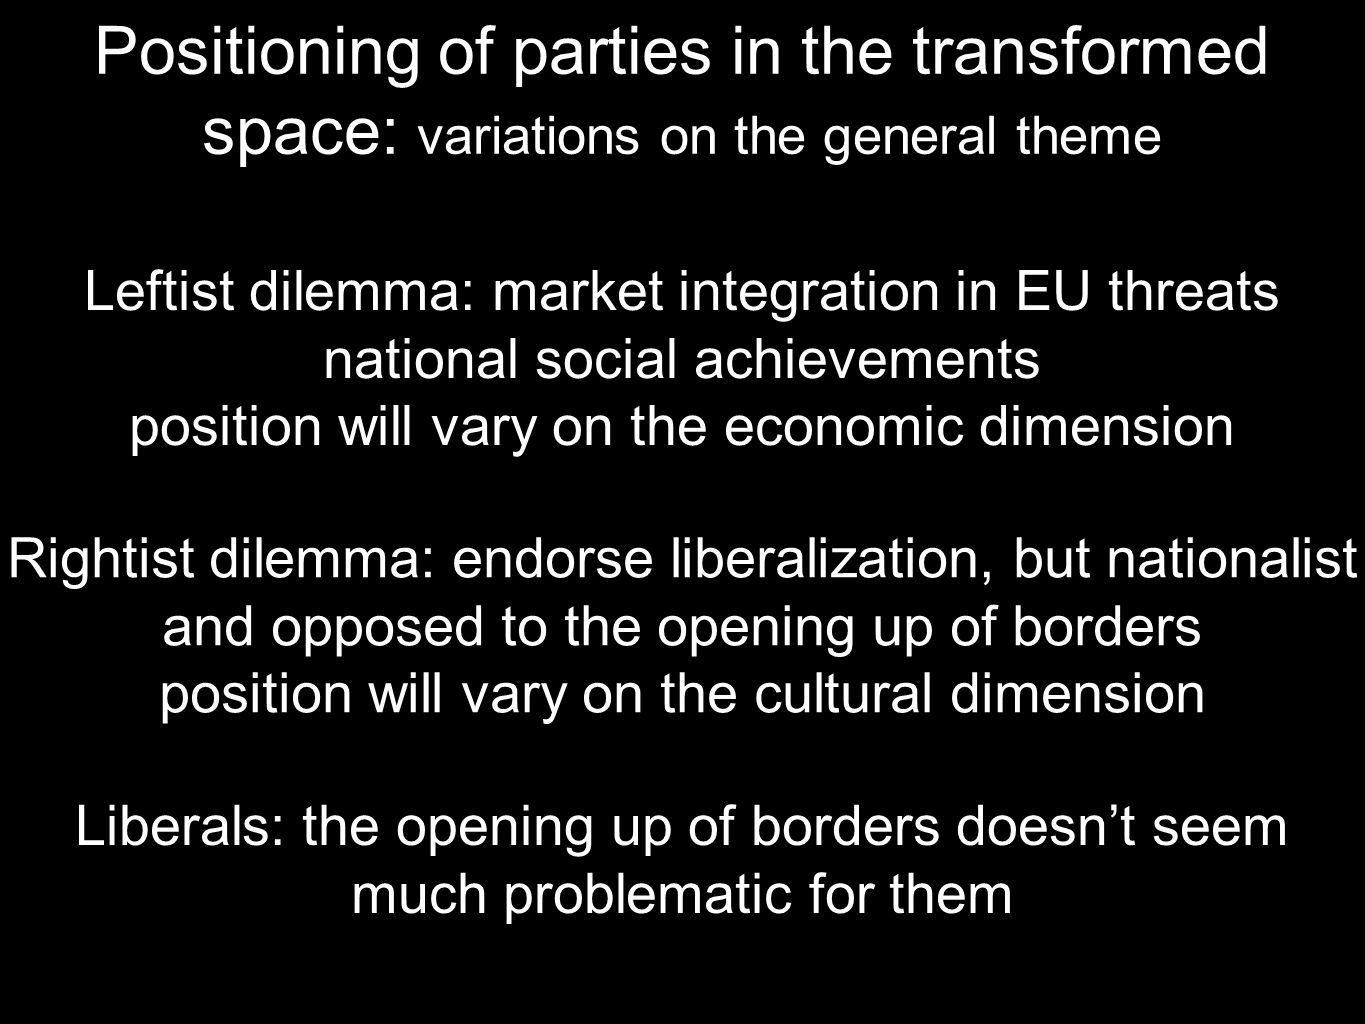 Positioning of parties in the transformed space: variations on the general theme